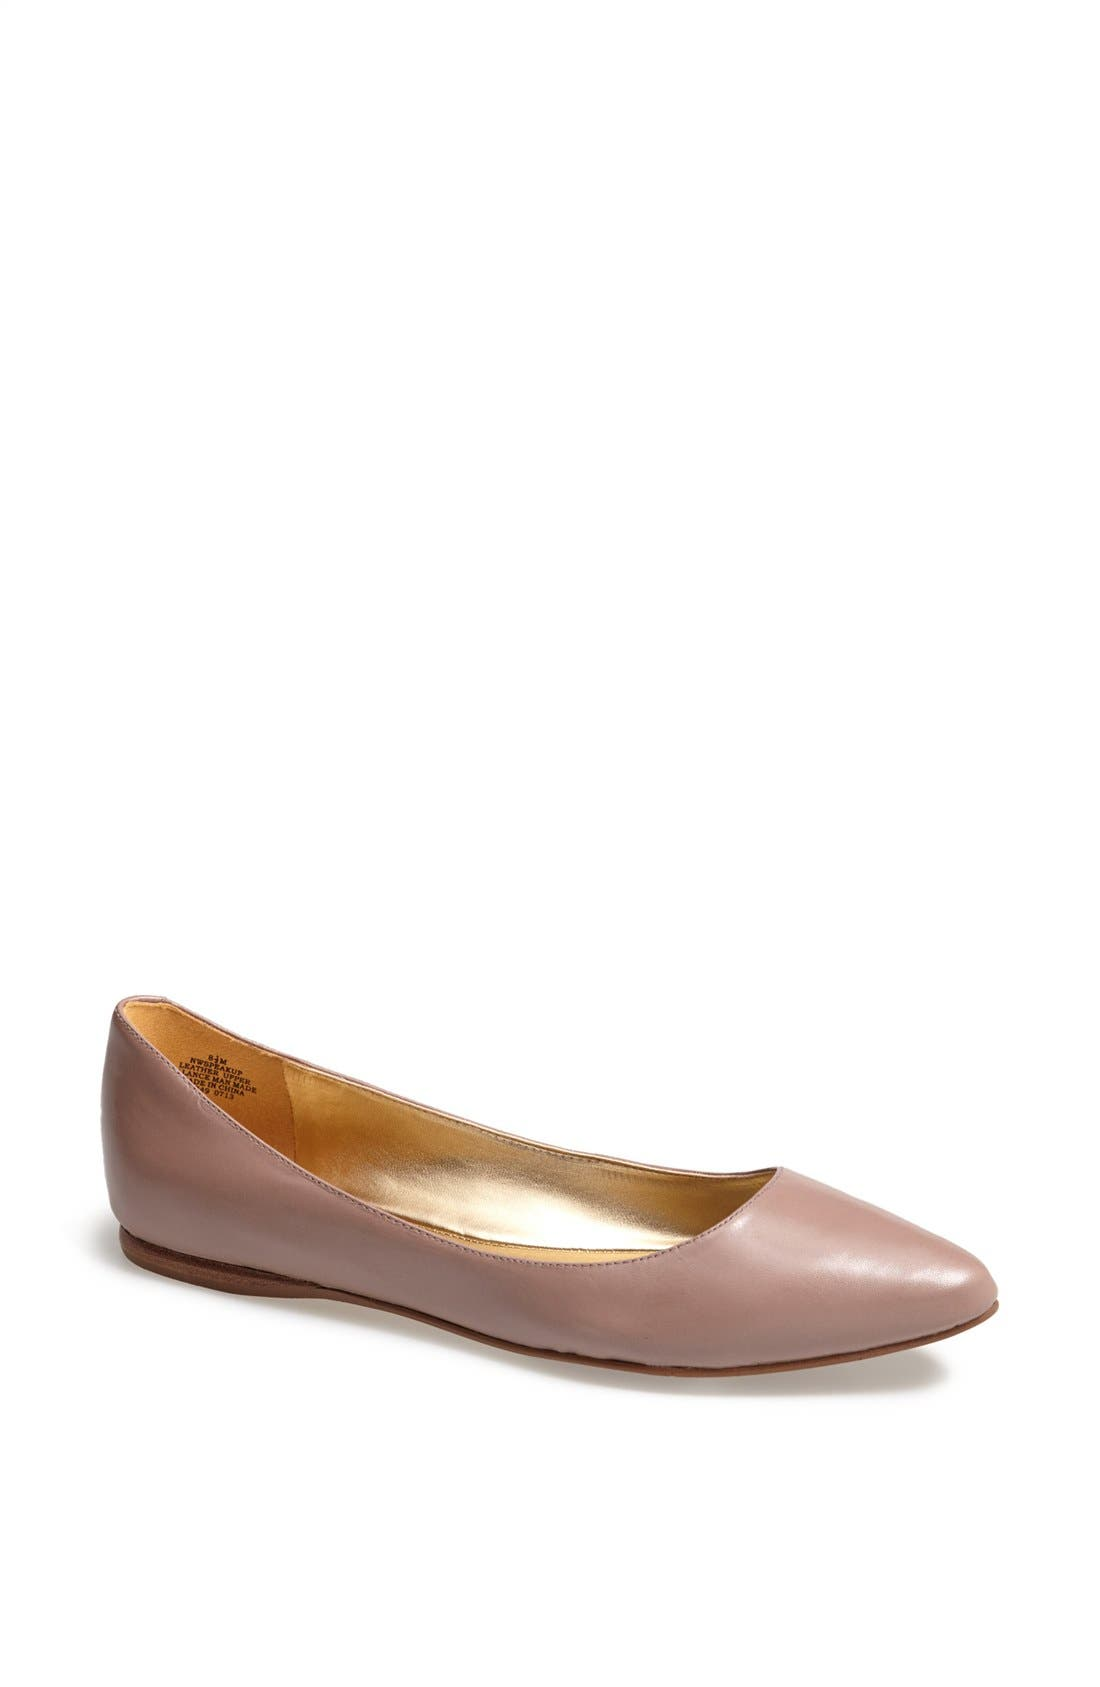 Main Image - Nine West 'Speakup' Flat